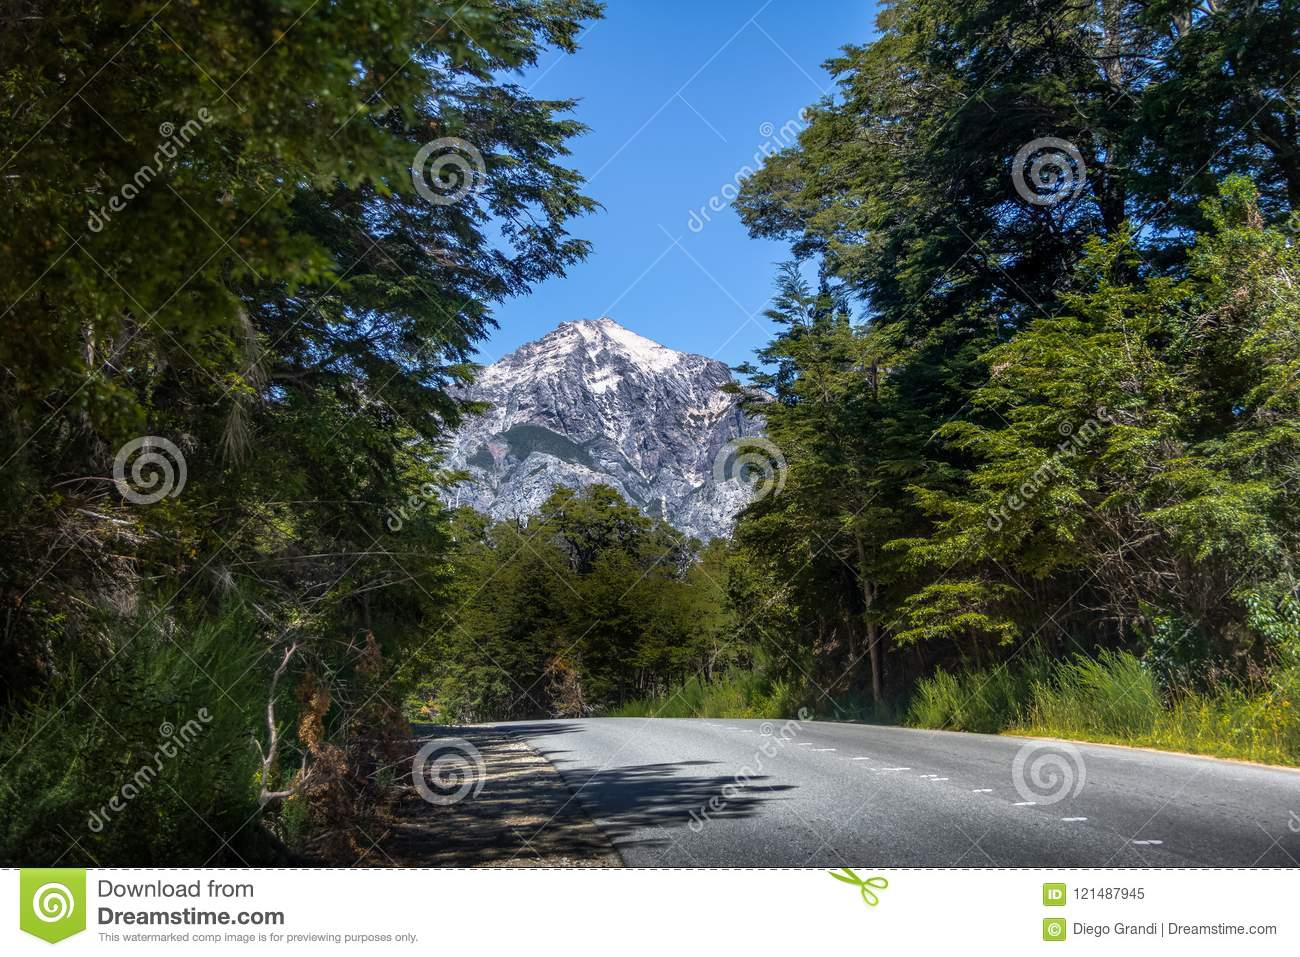 Circuito Chico : Circuito chico hiking road with snowtopped mountain on background